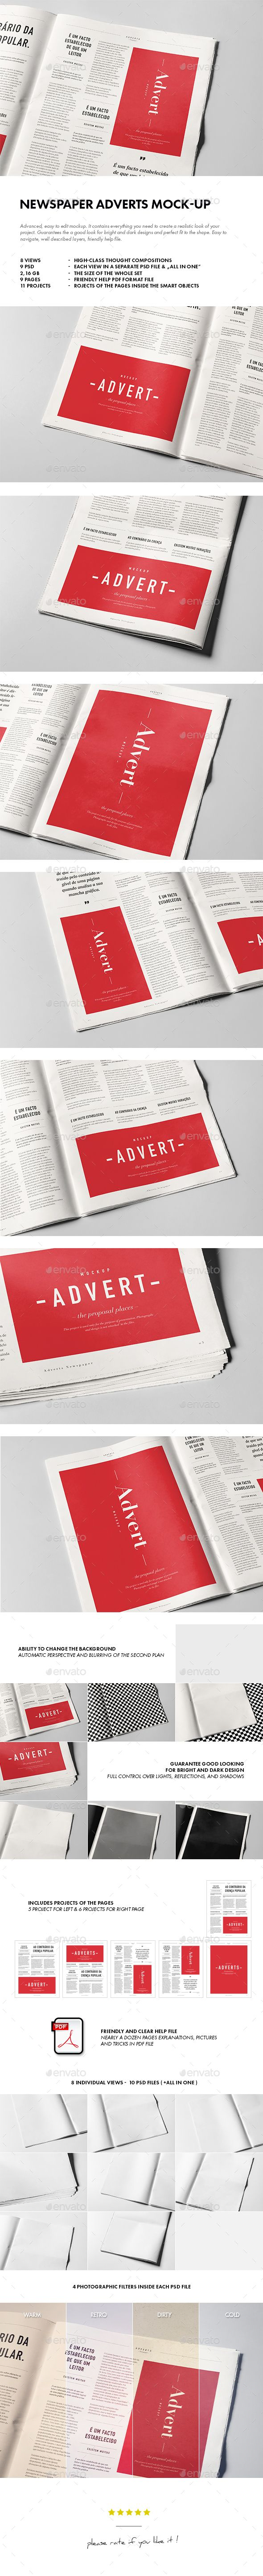 Newspaper Adverts Mock-up. Download here: http://graphicriver.net/item/newspaper-adverts-mockup/14939152?ref=ksioks